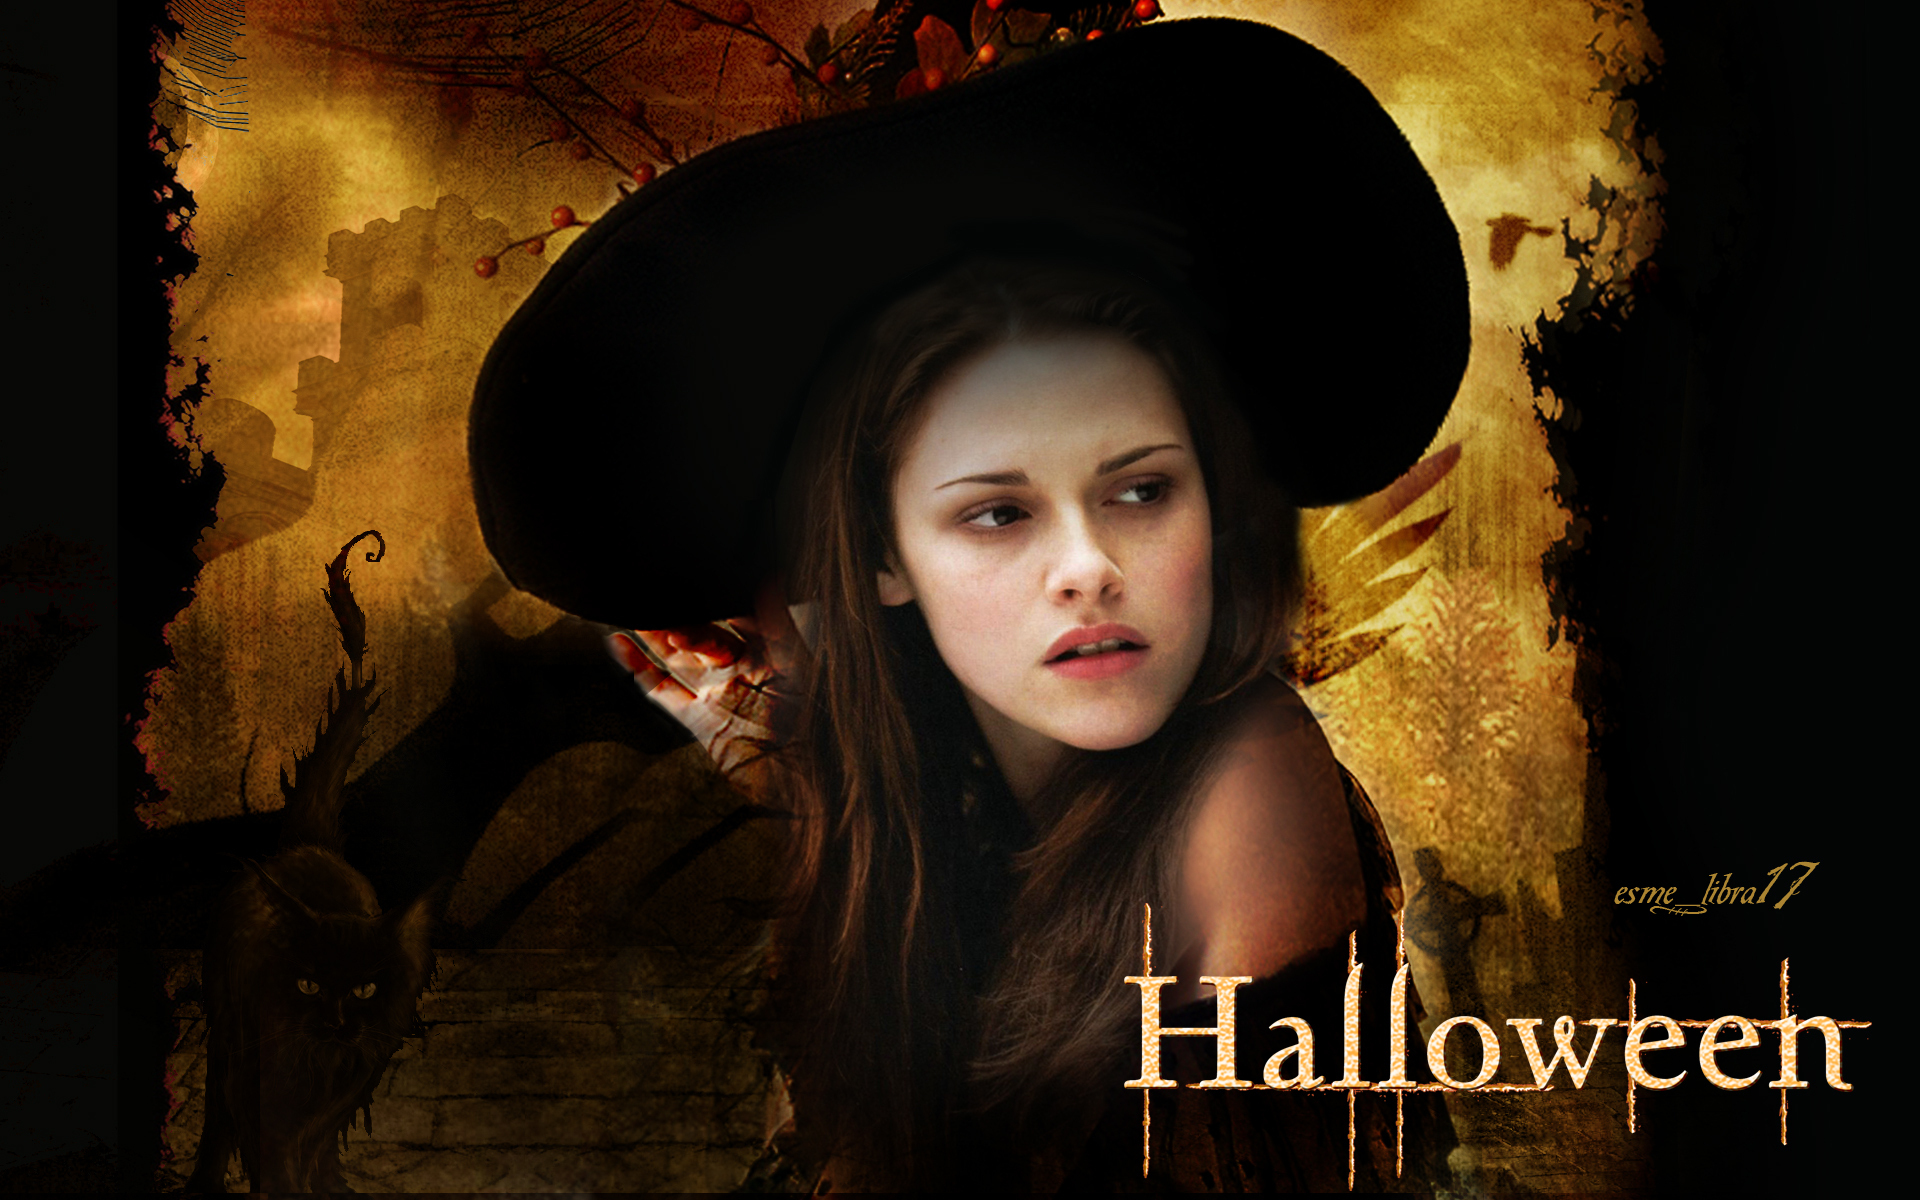 http://images2.fanpop.com/image/photos/8800000/happy-halloween-twilight-cast-twilight-series-8815796-1920-1200.jpg